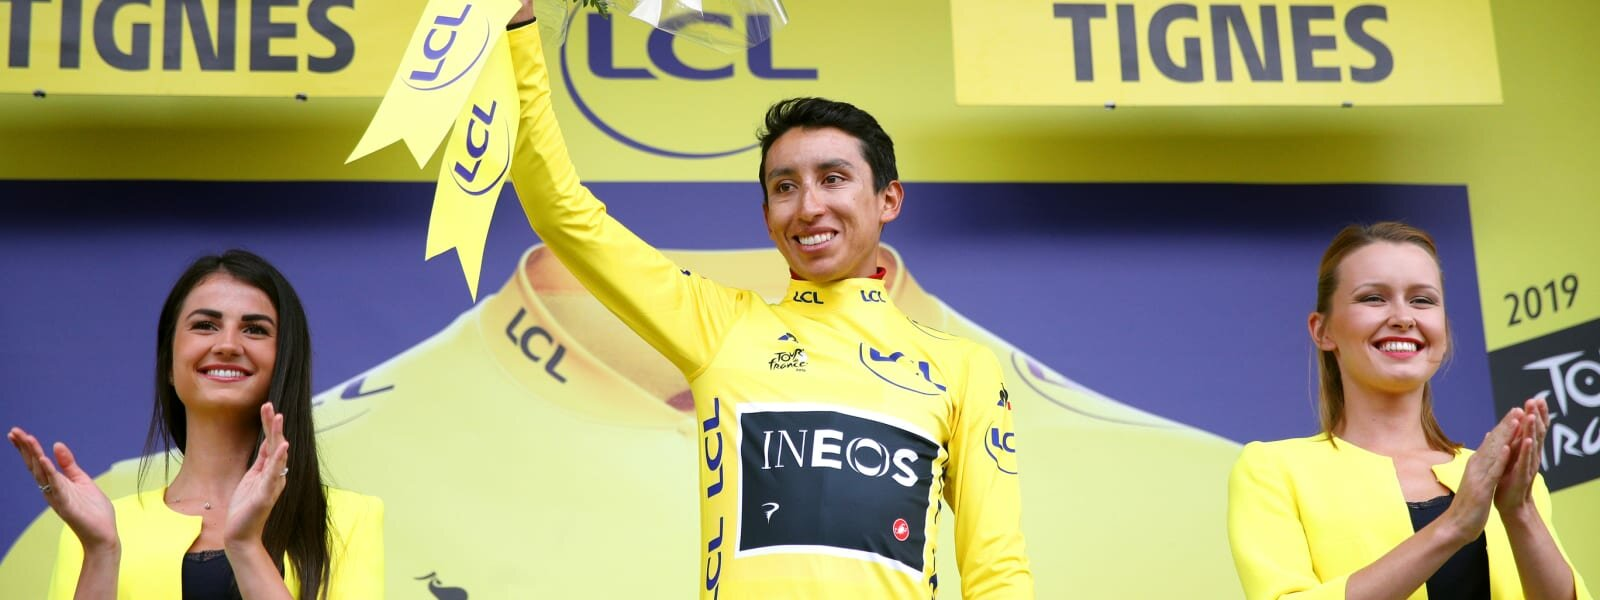 Calendario Tour De France 2019.Tour De France 2019 Egan Bernal Official Website